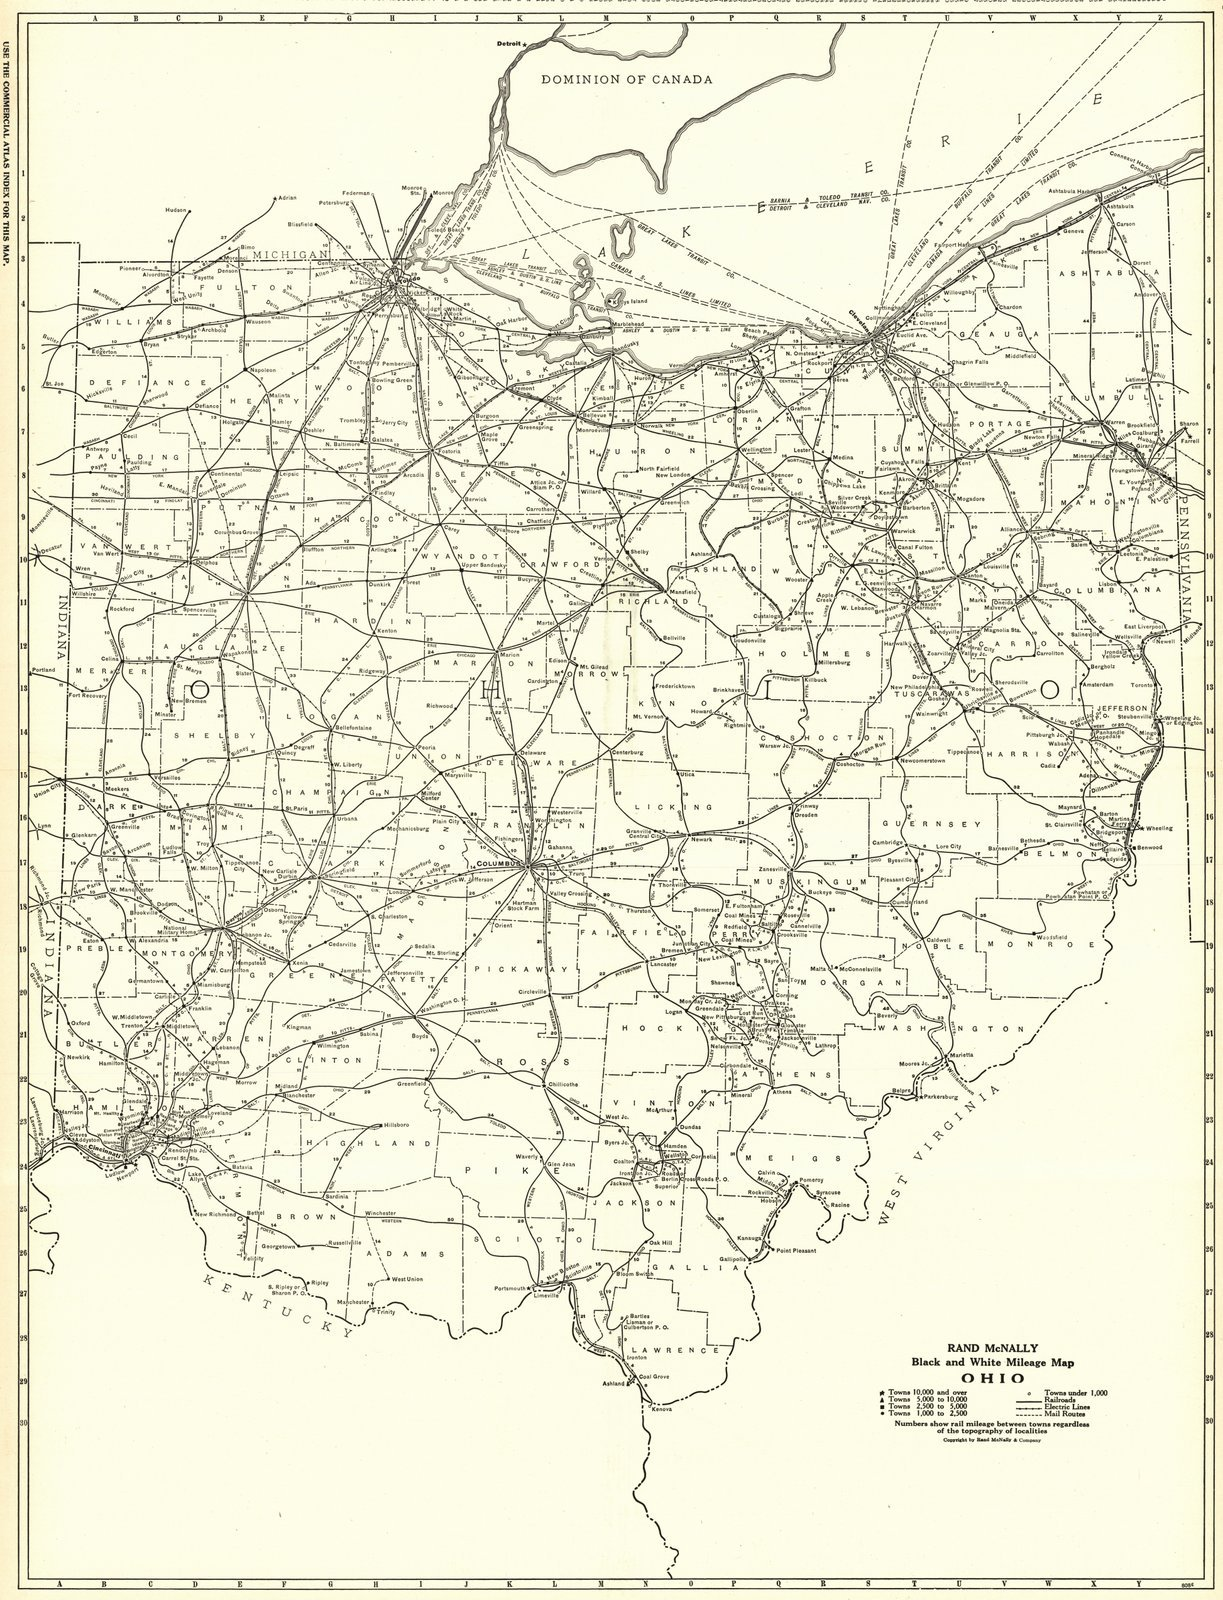 Historic Map | 1921 Ohio- Black and White Mileage Map | Rand McNally and Company by historic pictoric (Image #1)